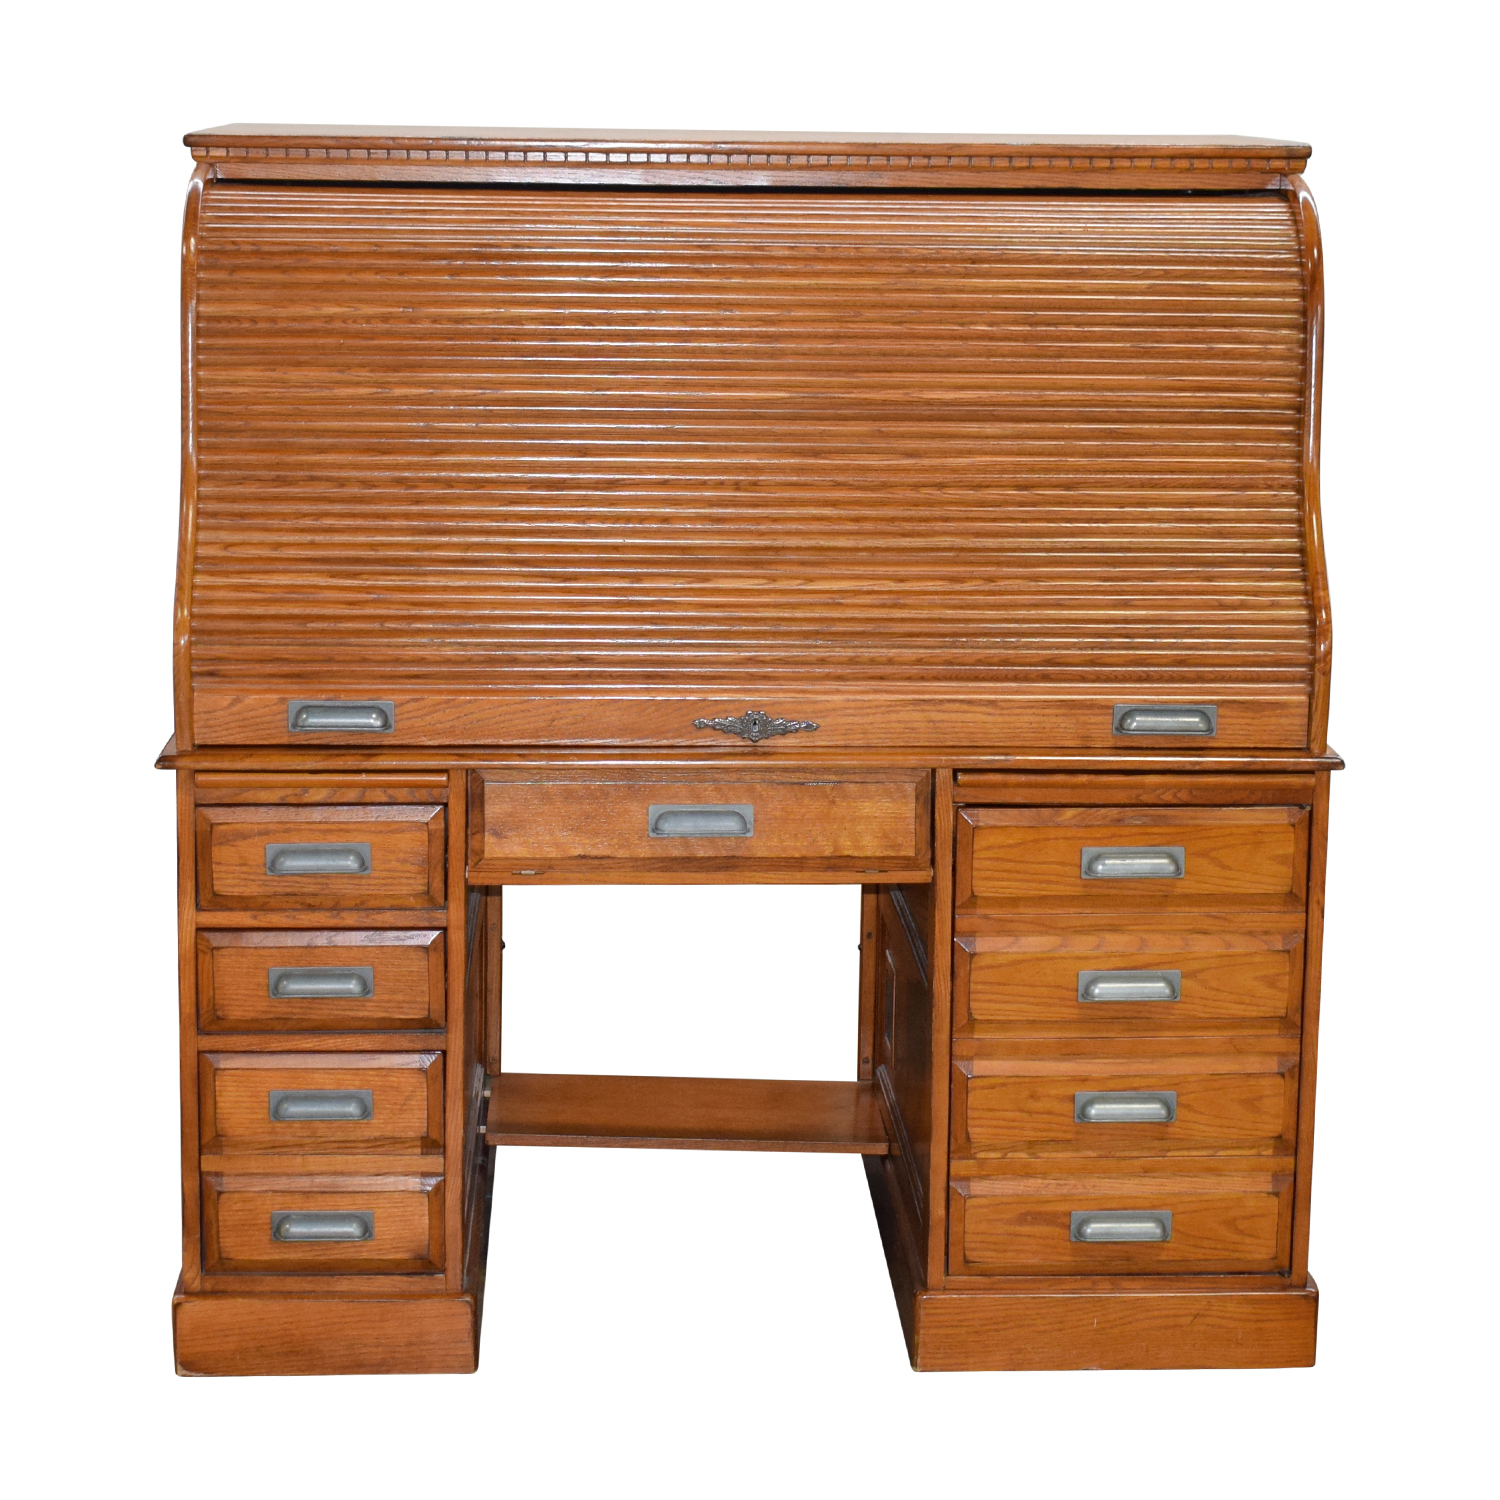 Roll-Top Desk with Drawer Storage nj